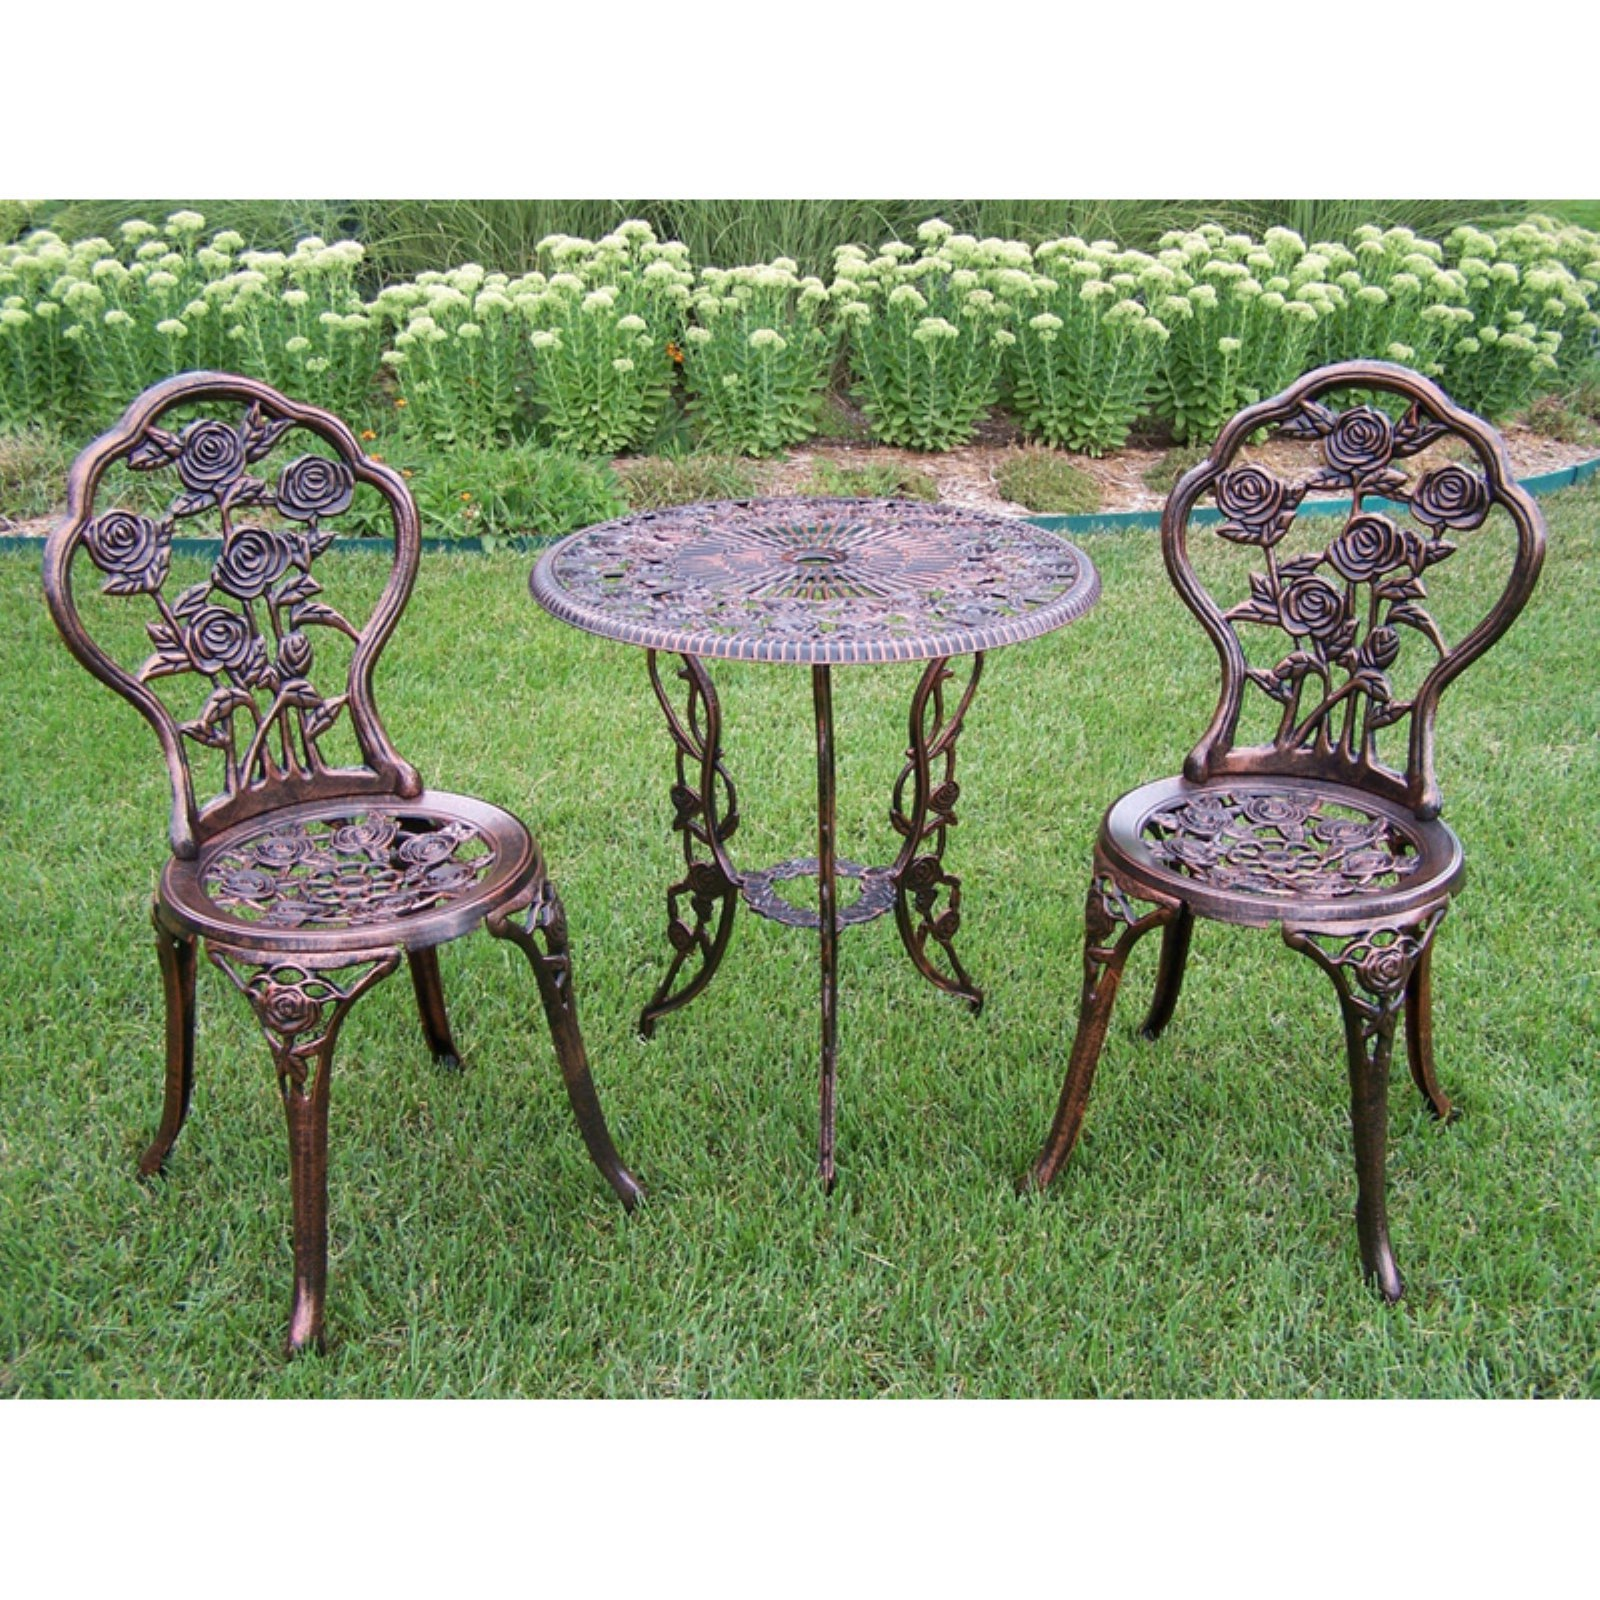 Oakland Living Rose Patio Bistro Set by Oakland Living